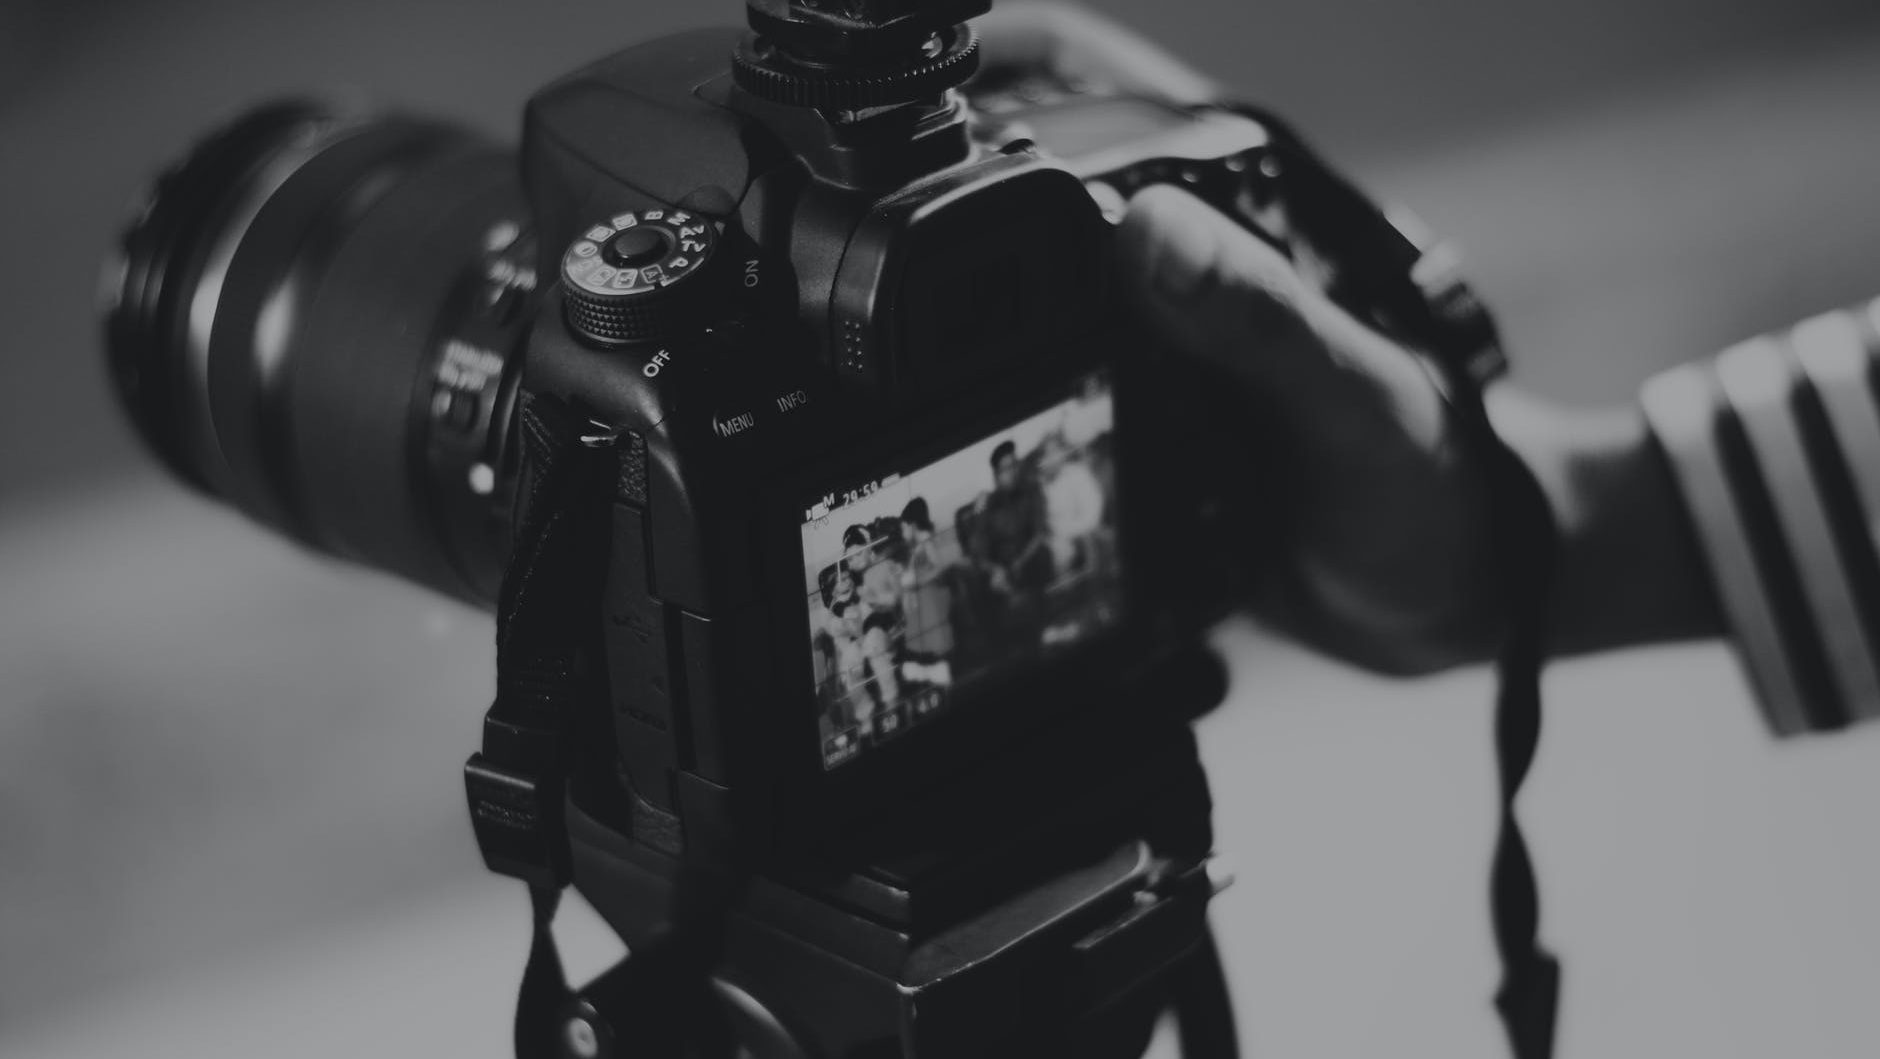 grayscale photography of person holding black dslr camera